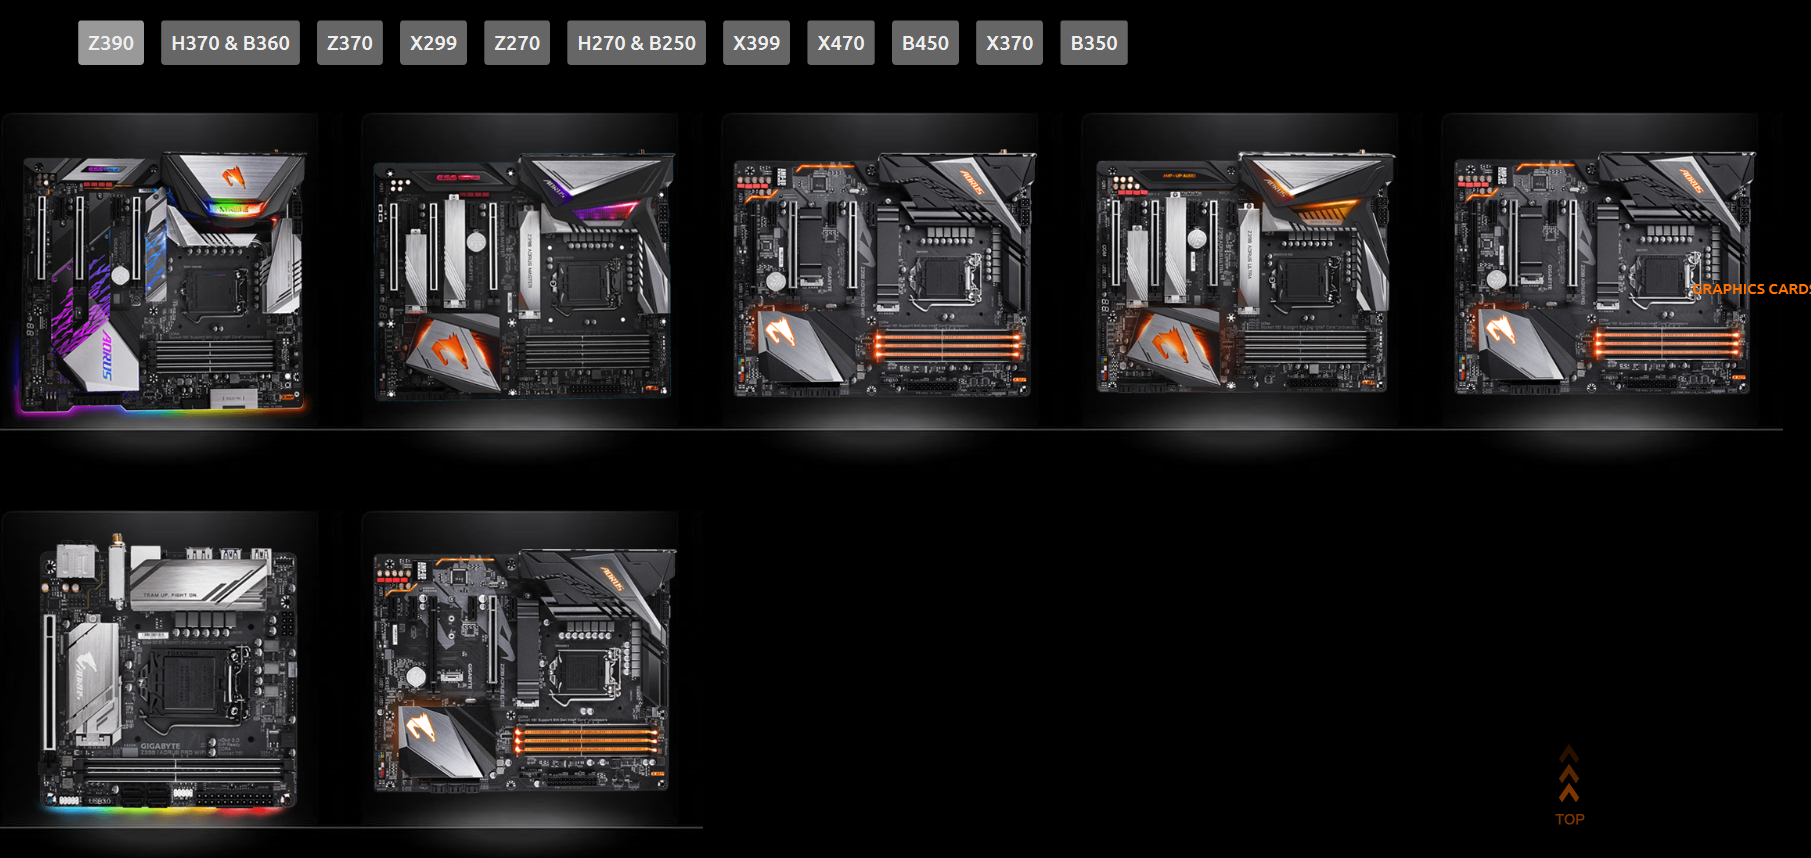 Gigabyte Z390 UD help   - CPUs, Motherboards, and Memory